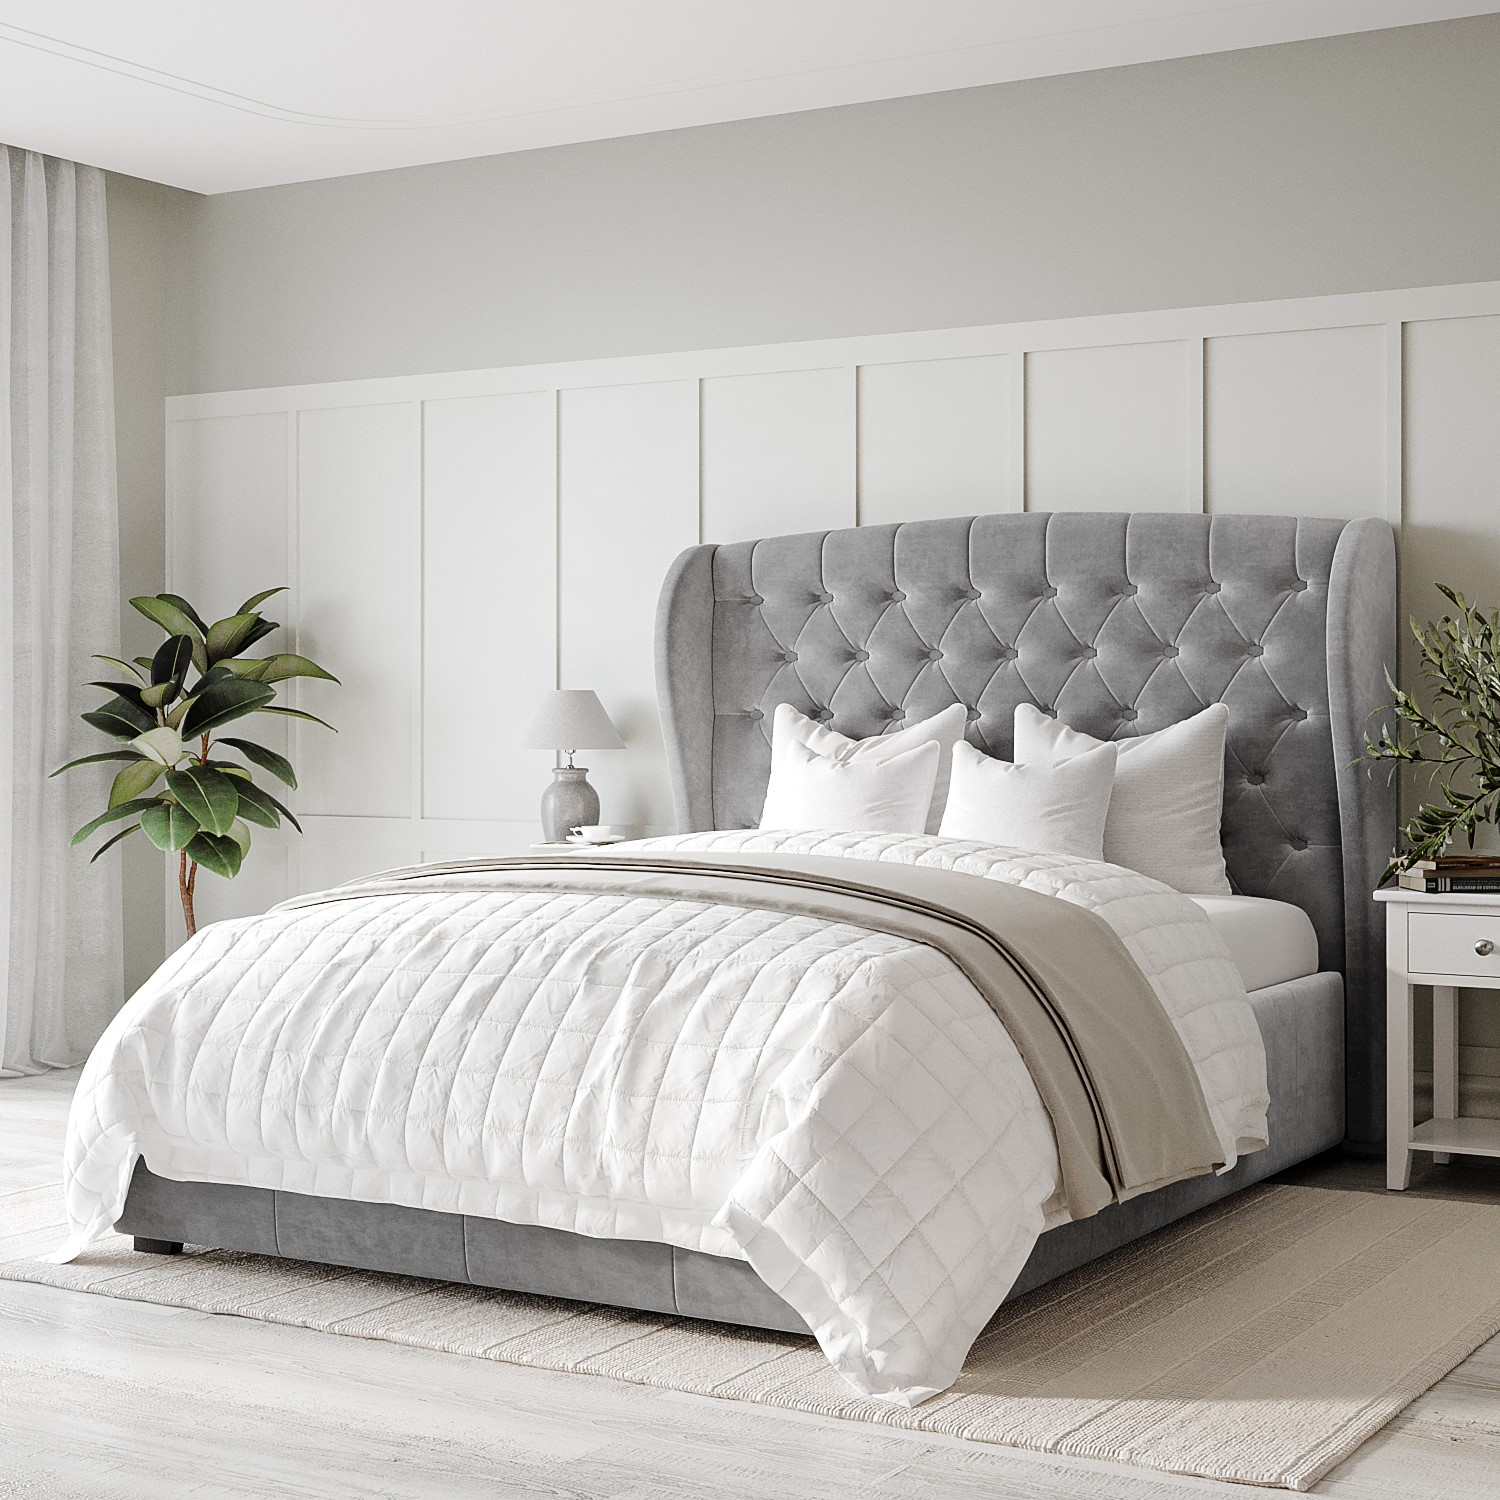 Double Grey Velvet Wing Back Ottoman Storage Bed Safina